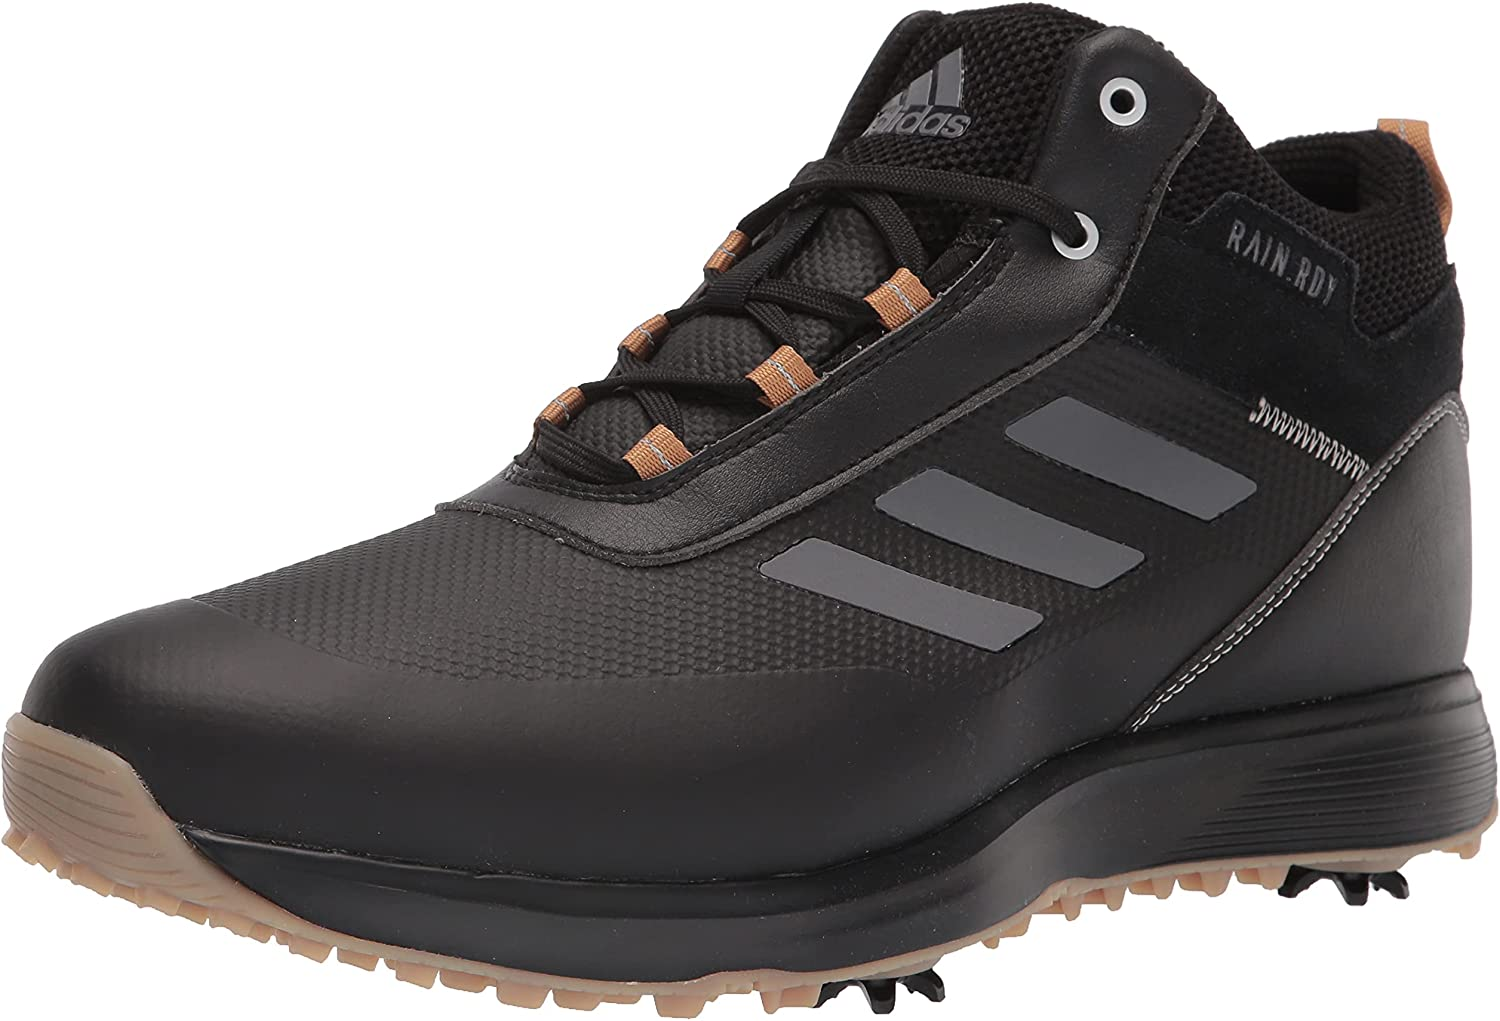 adidas Men's Great interest Super sale period limited S2g Recycled Polyester Shoes Cut Golf Mid